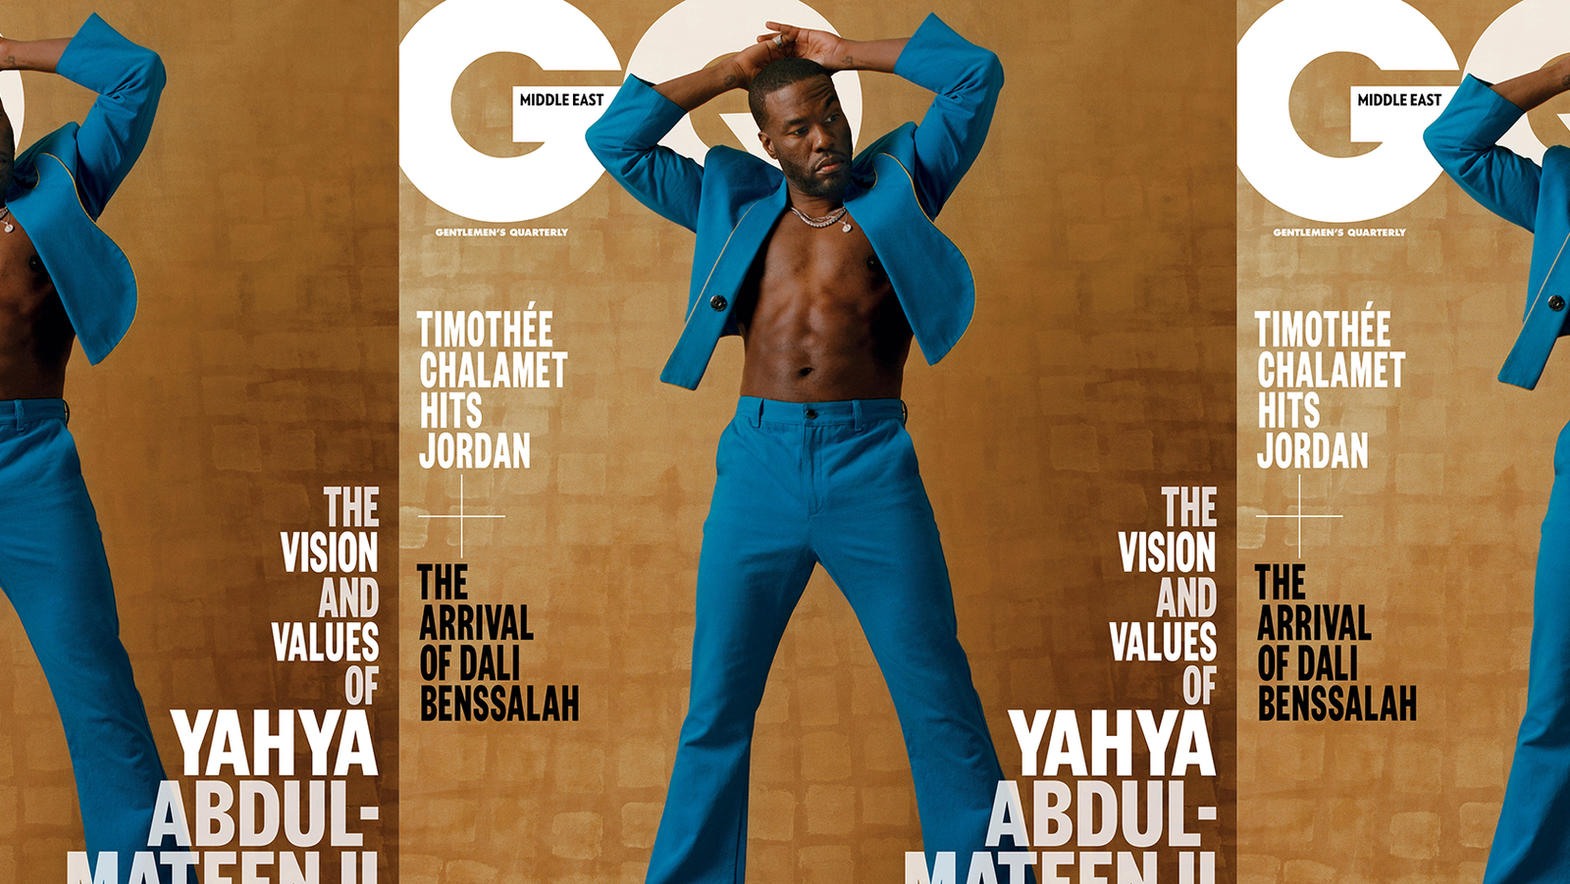 The Vision and Values of Yahya Abdul-Mateen II